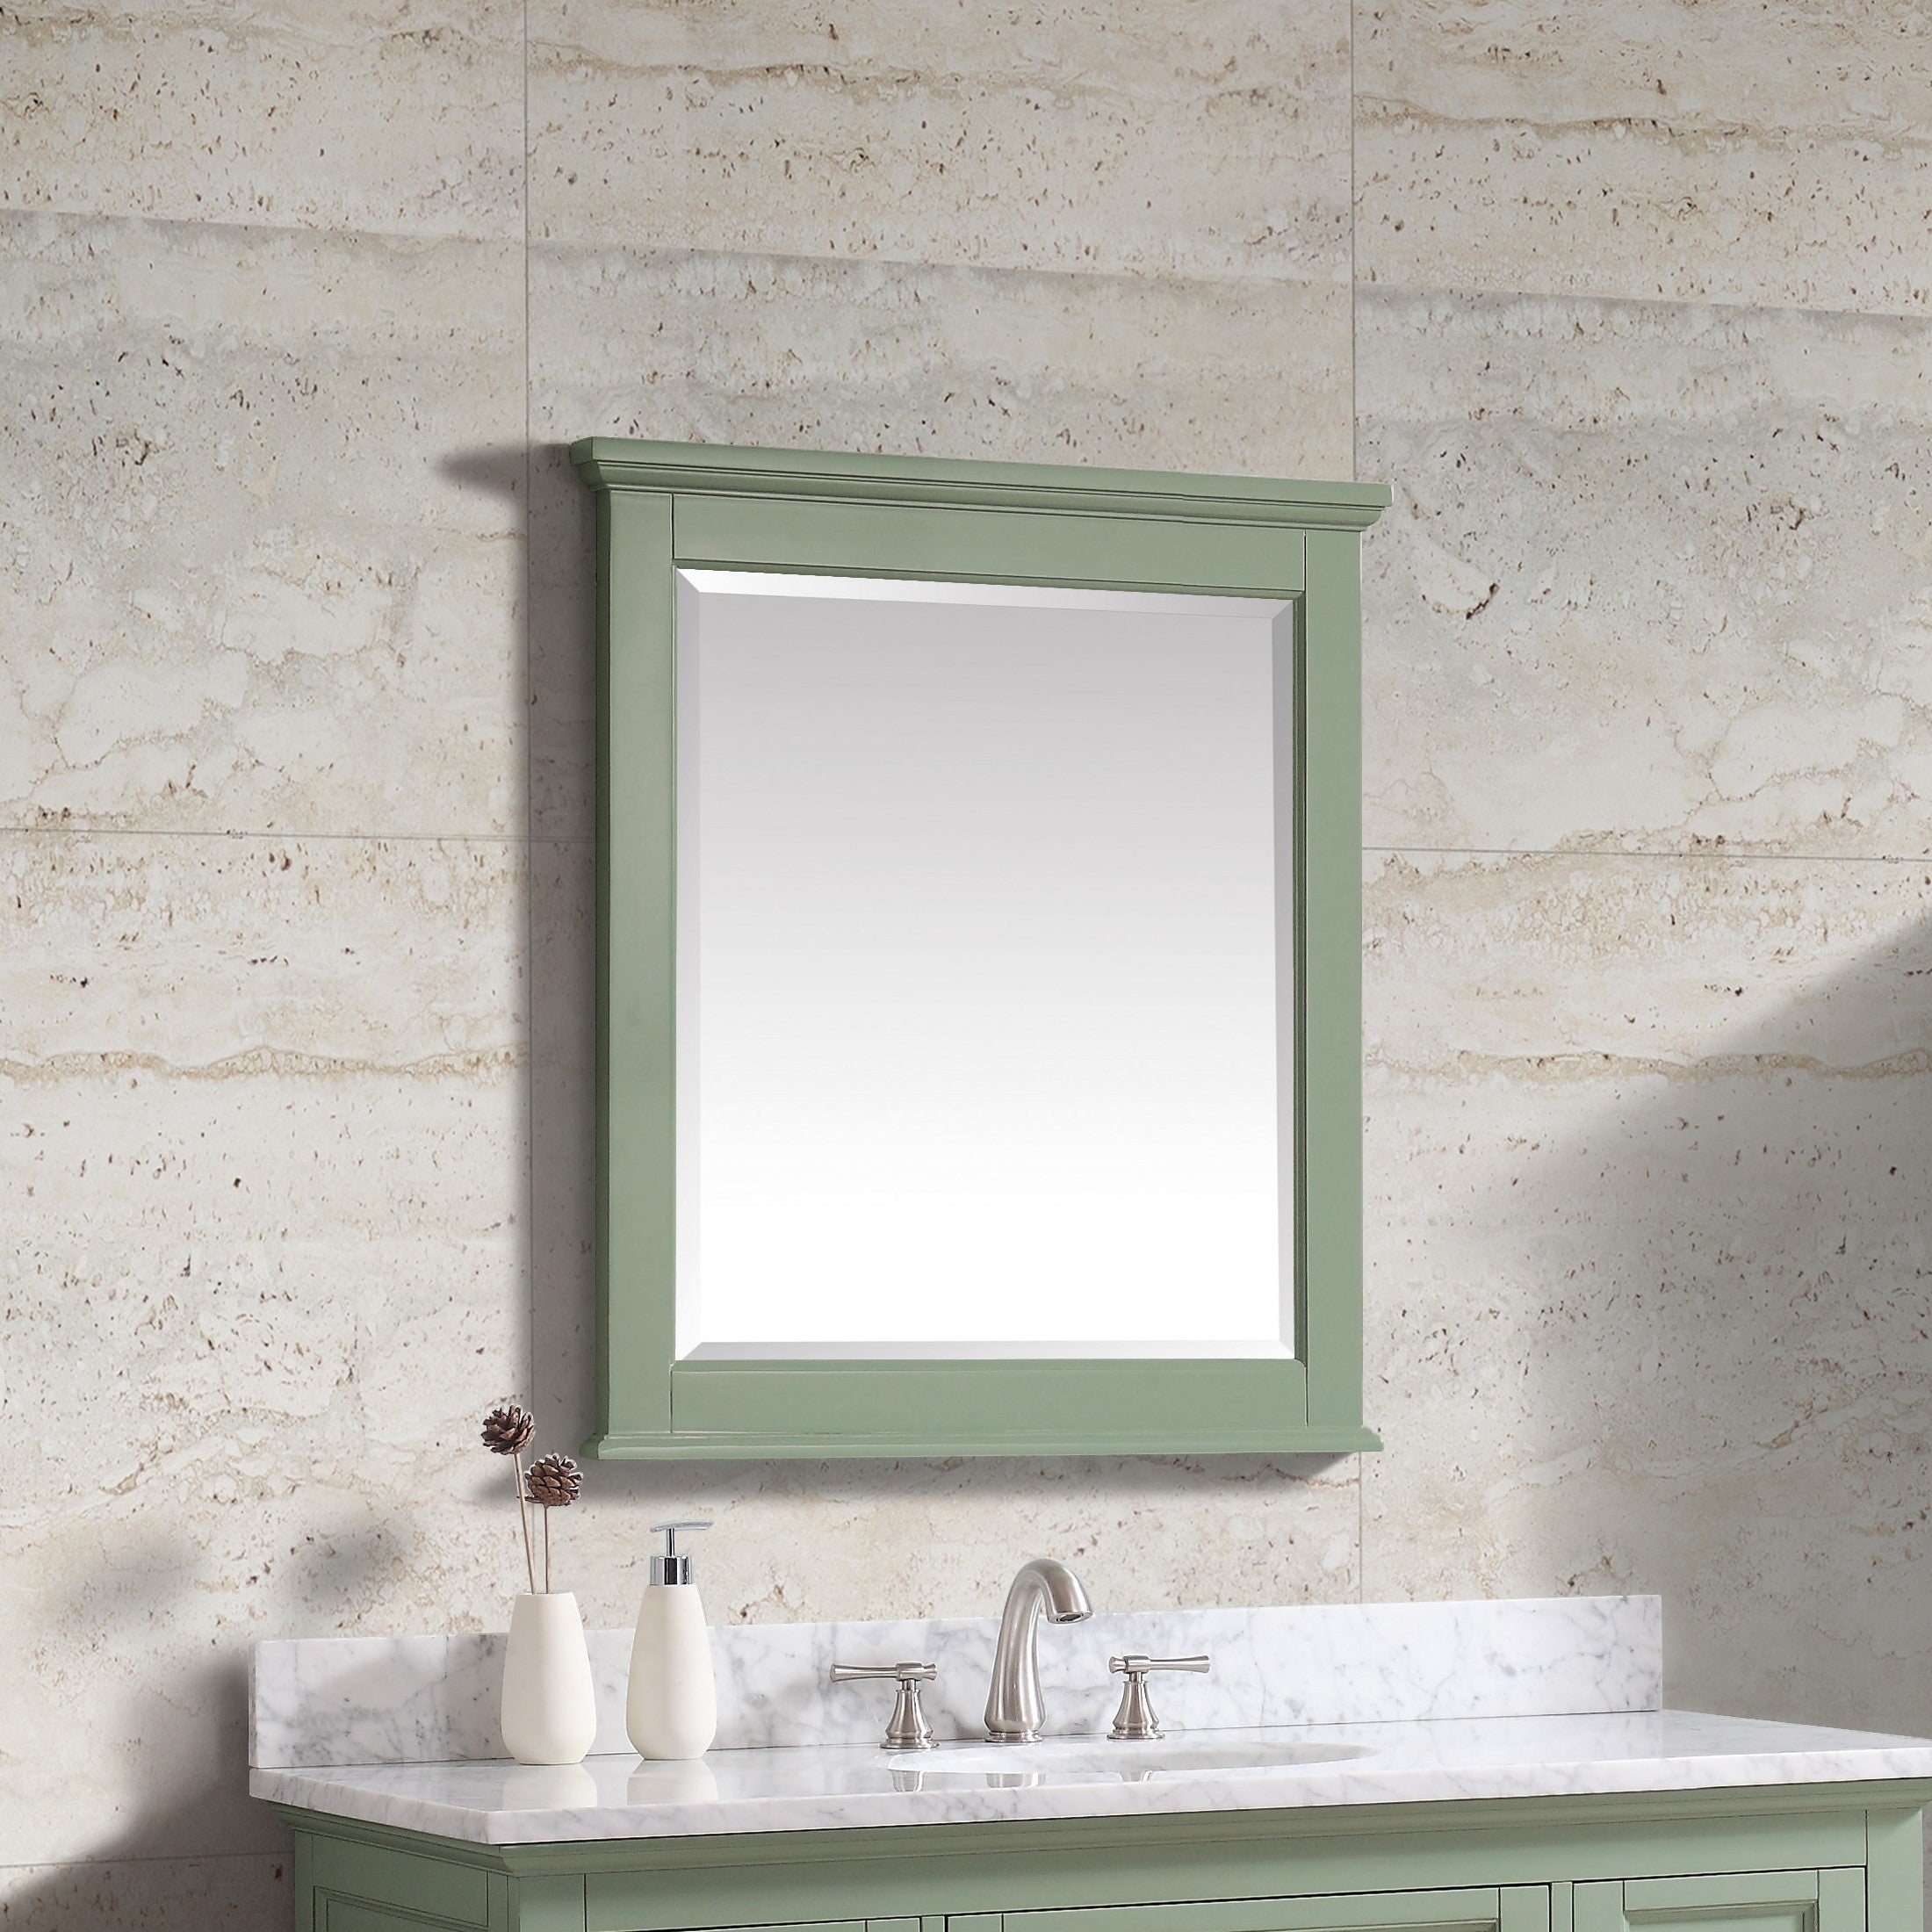 """Avanity Colton 28 In. Wall Mirror - Basil Green - Basil Green - 28""""w X 32""""h with Colton Modern & Contemporary Wall Mirrors (Image 4 of 30)"""